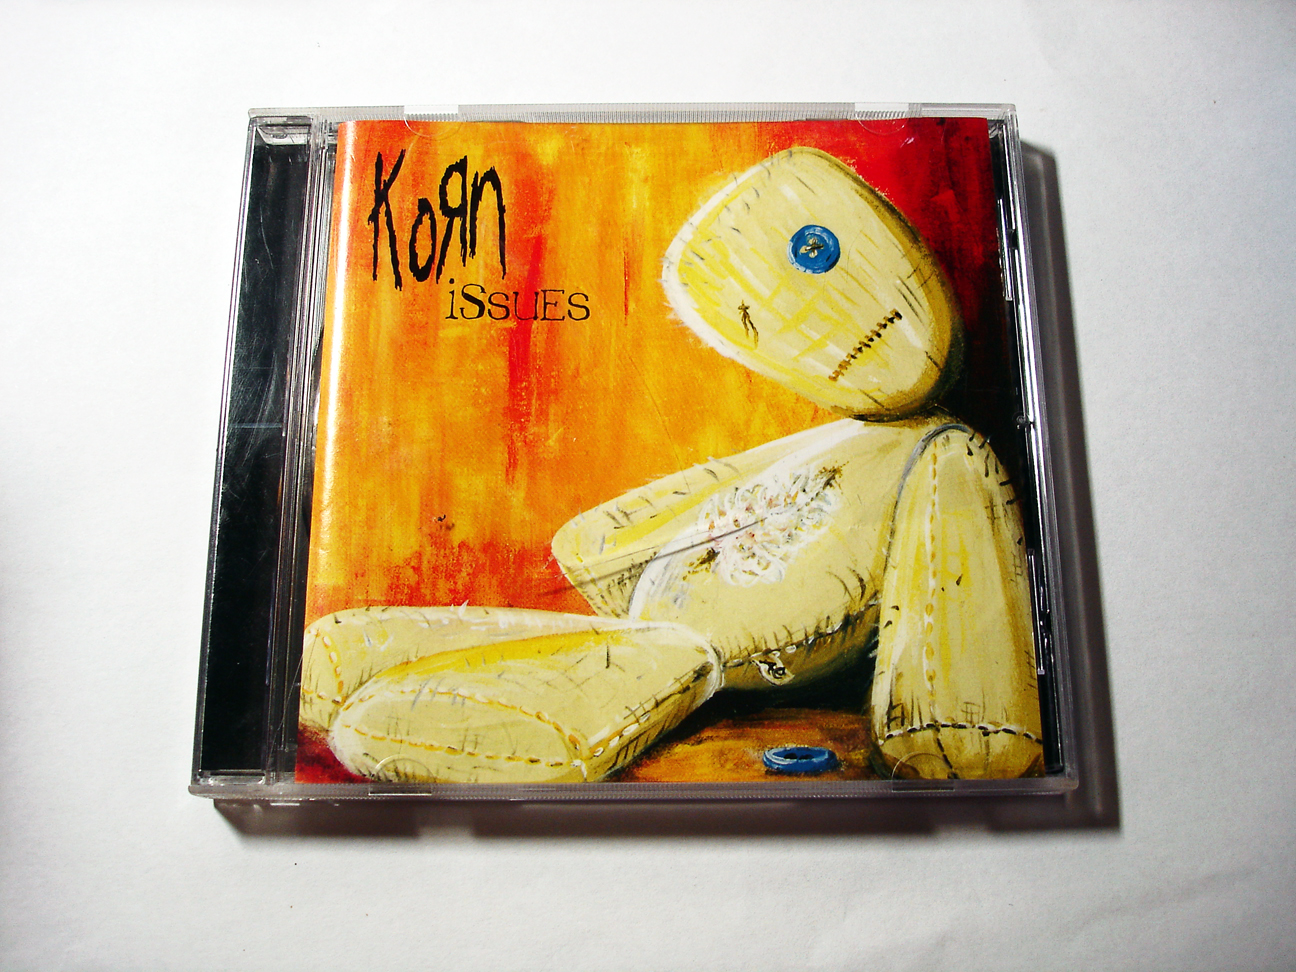 (album) Issues - Korn